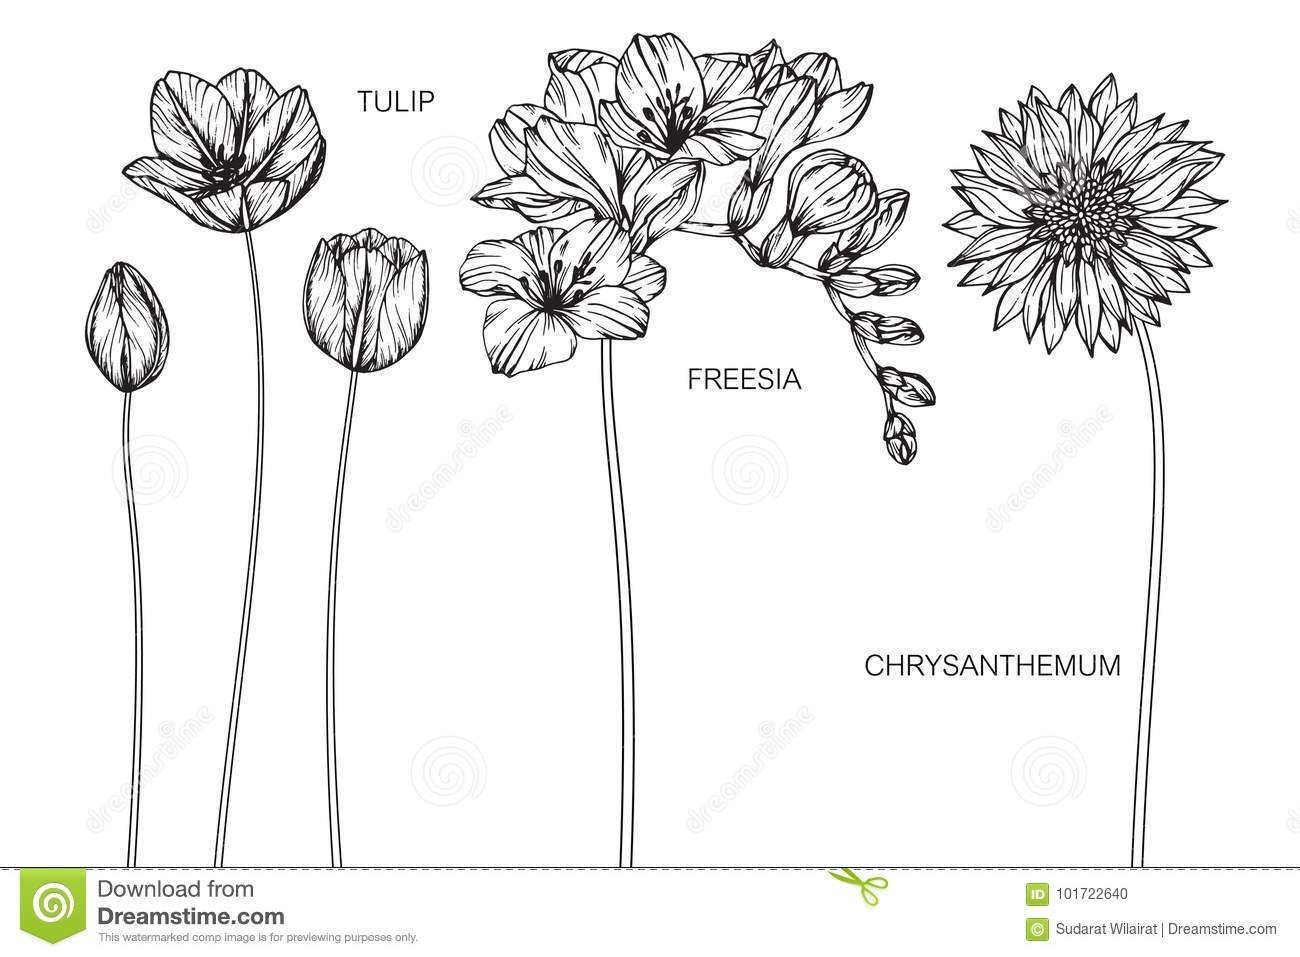 bd0c1da44 Tulip, Freesia, Chrysanthemum Flowers Drawing And Sketch. Stock ...